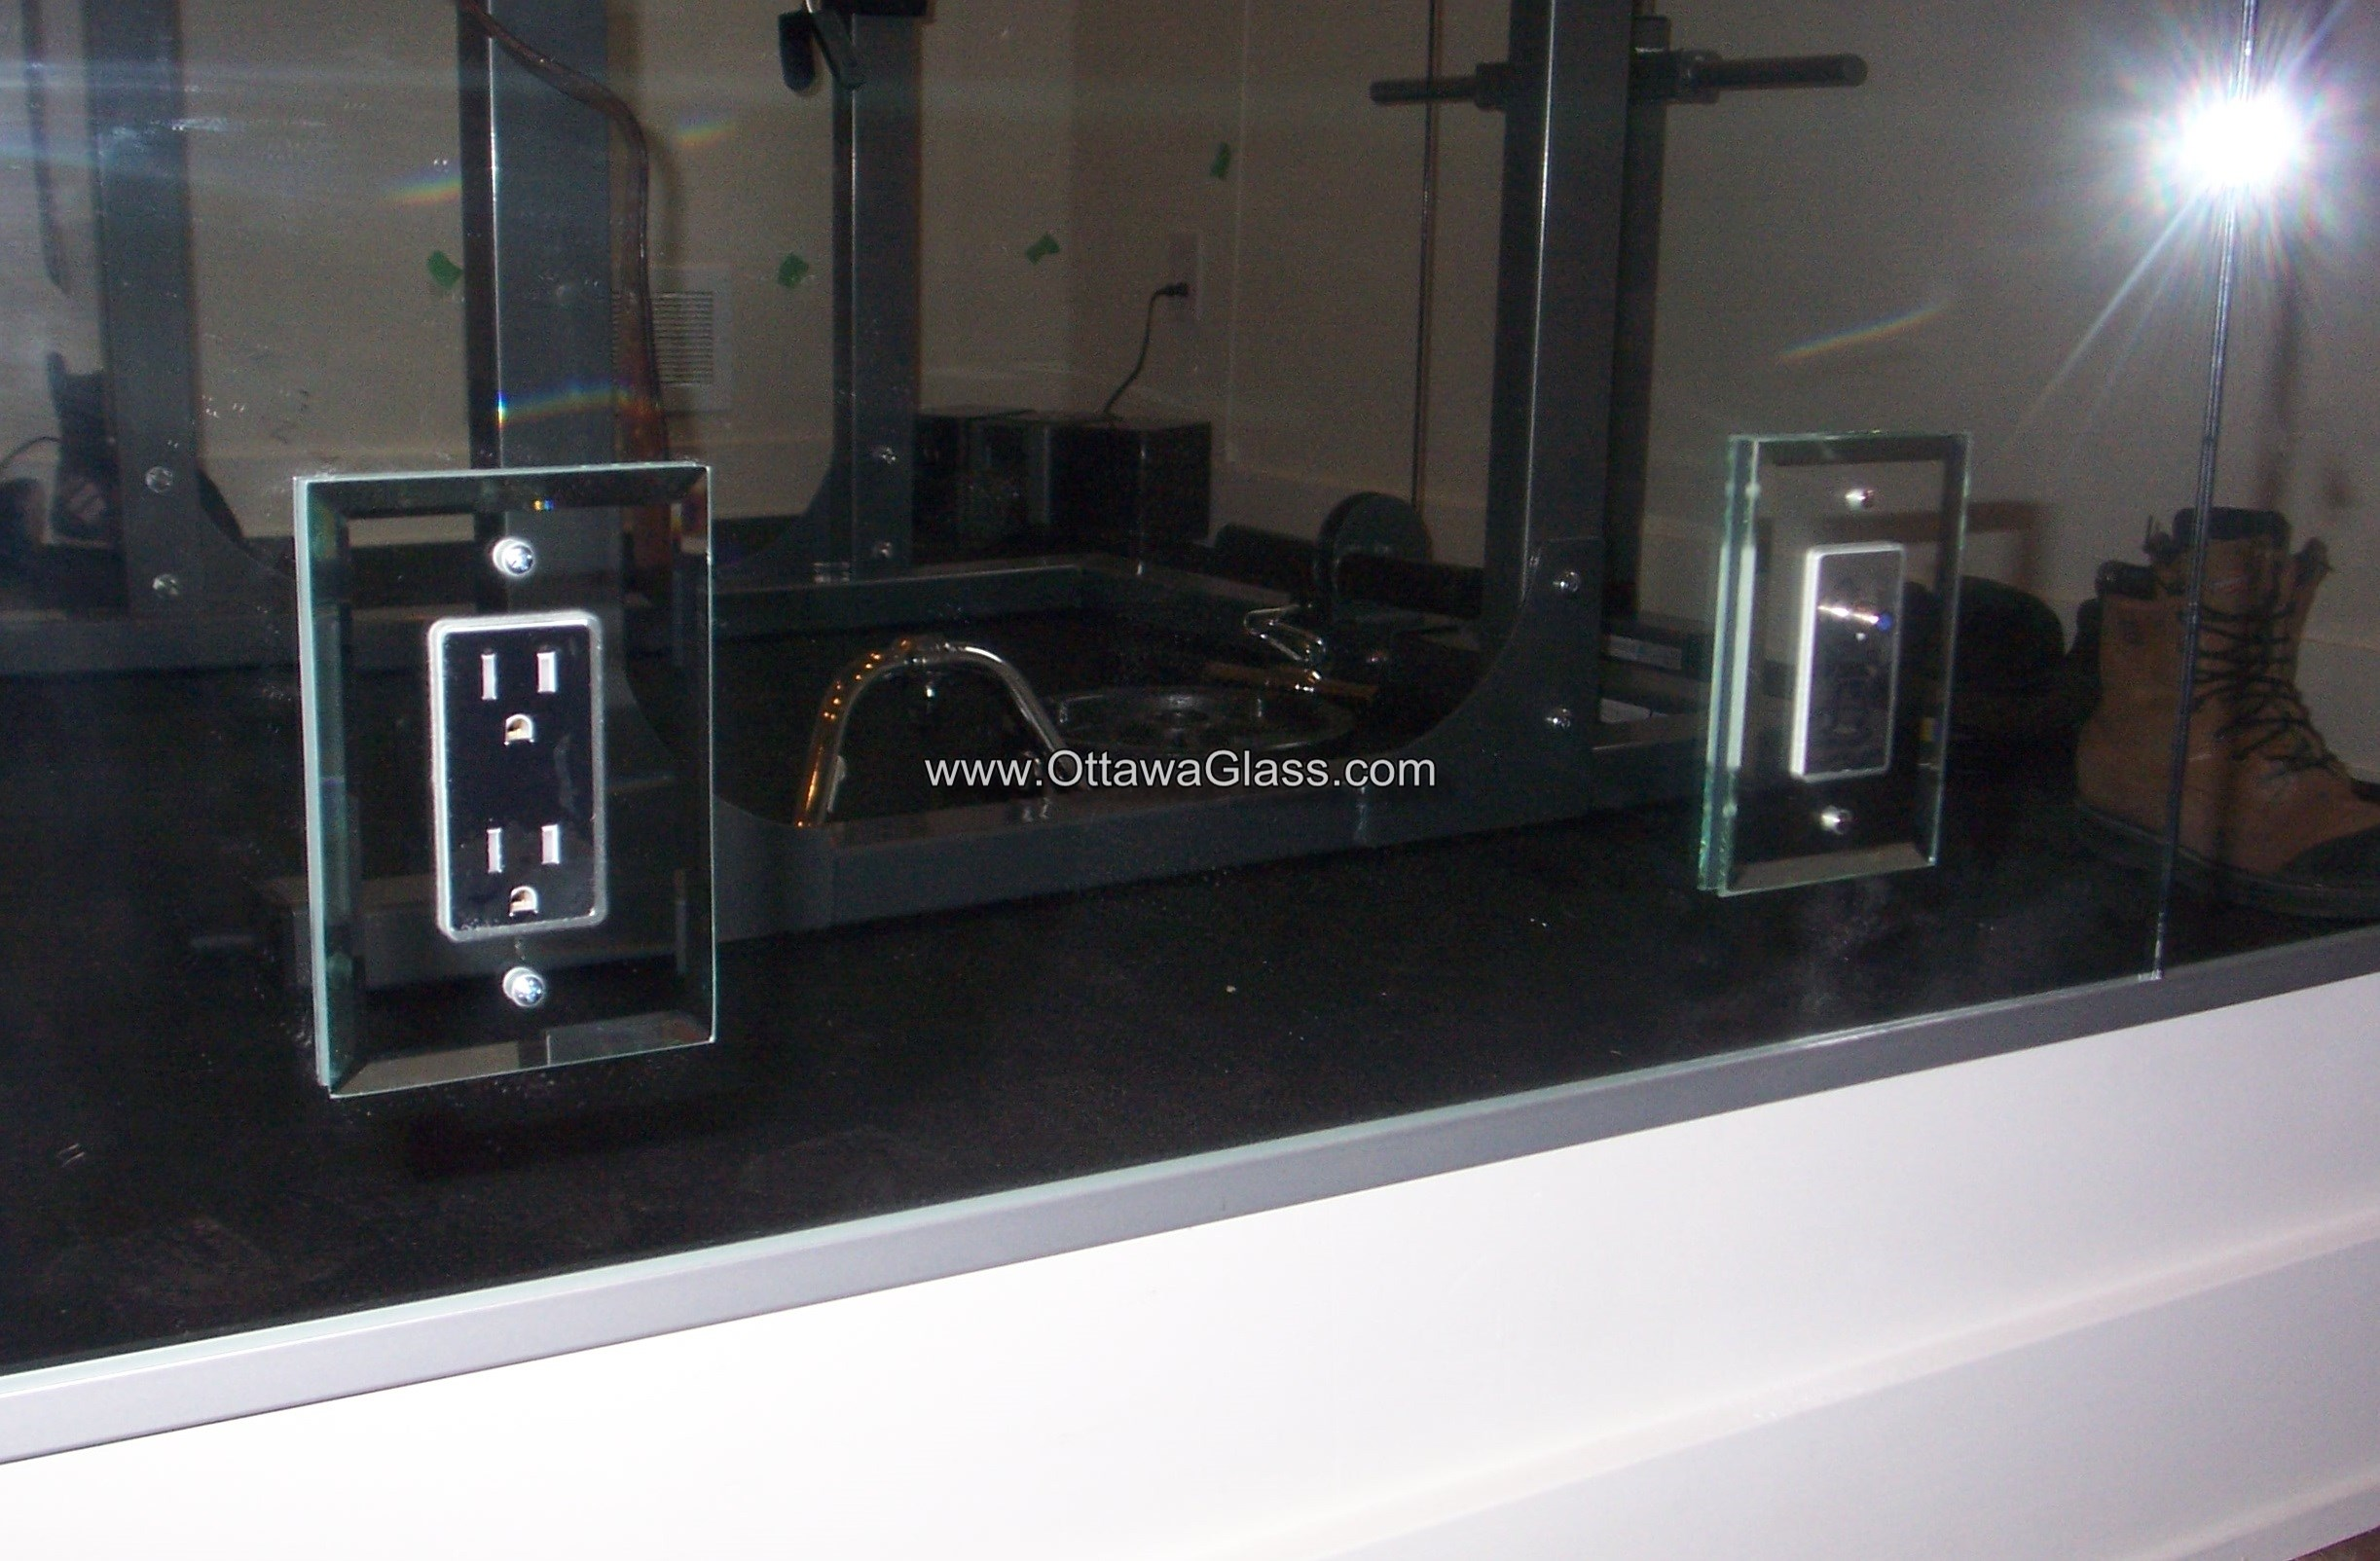 or for electrical outlets, then have mirror plates put on them.